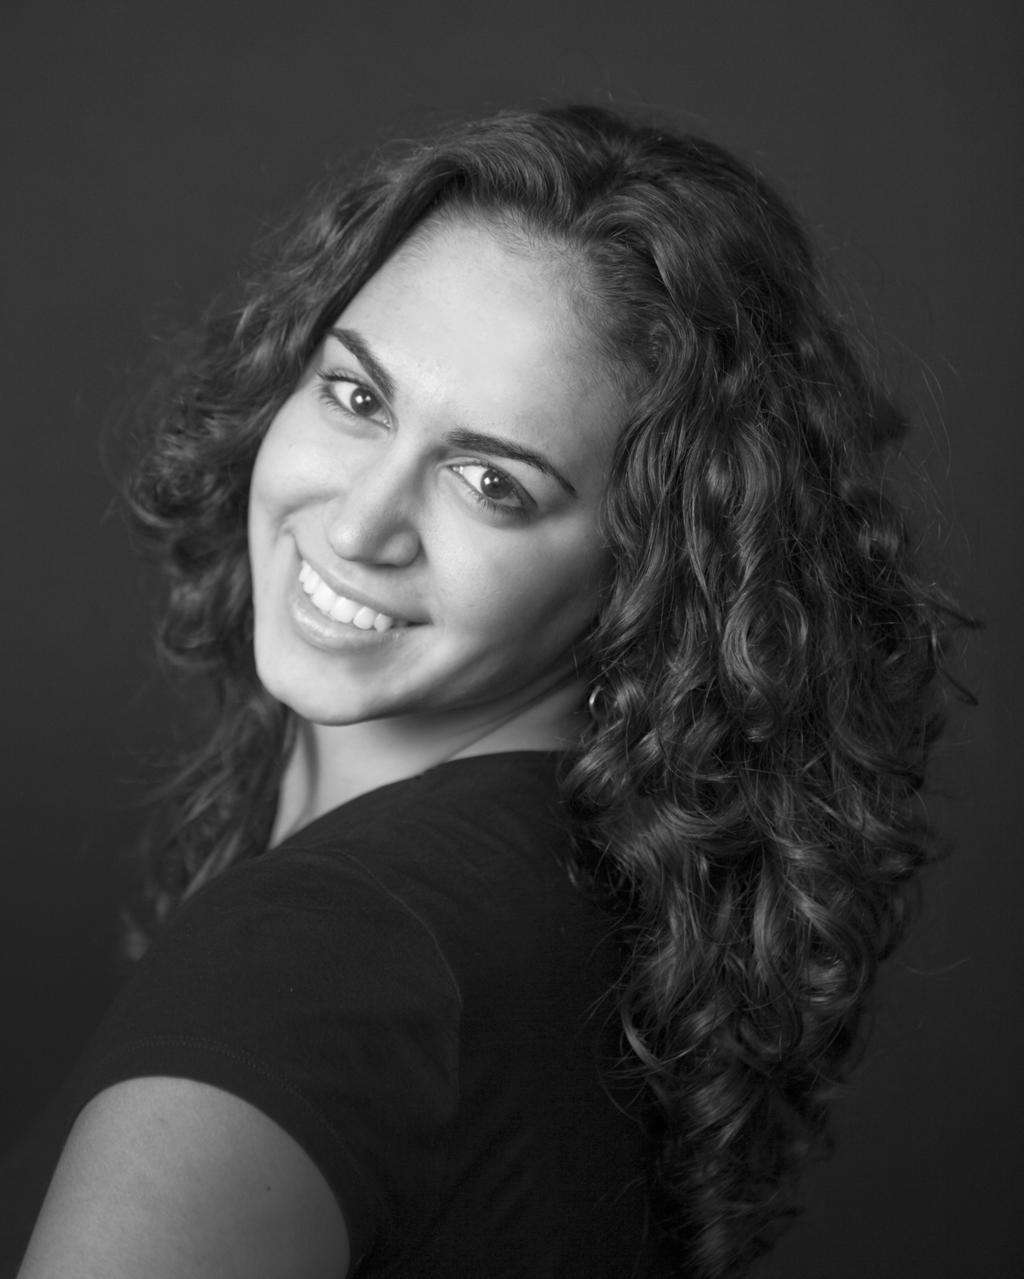 Caitlyn Schrader- Head Shot